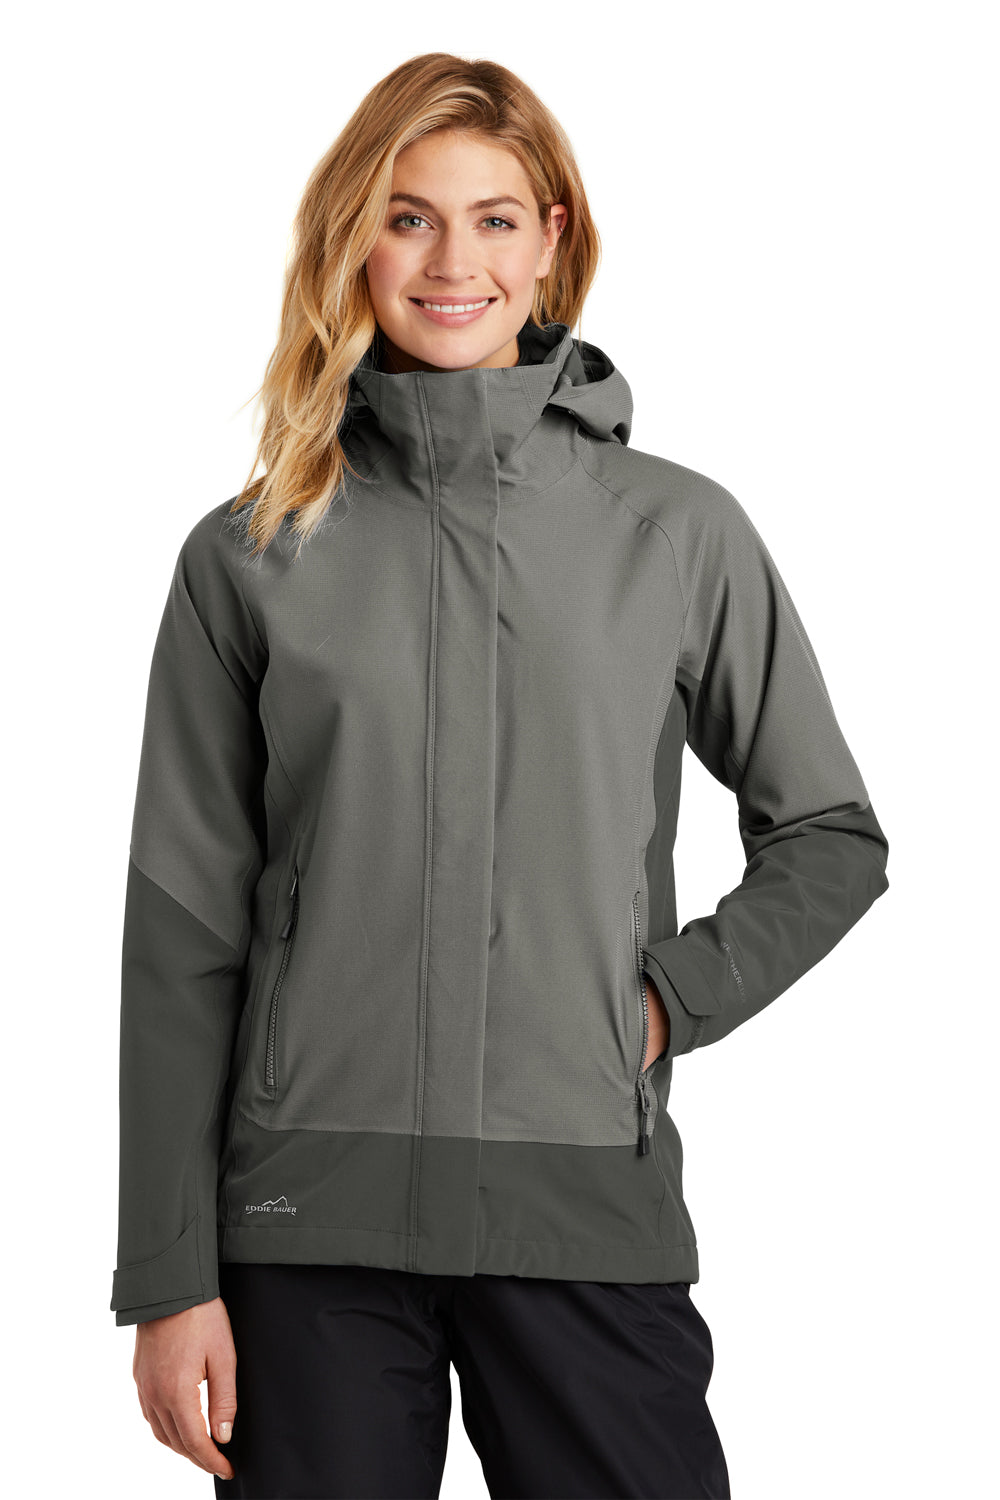 Eddie Bauer EB559 Womens WeatherEdge Waterproof Full Zip Hooded Jacket Metal Grey Front